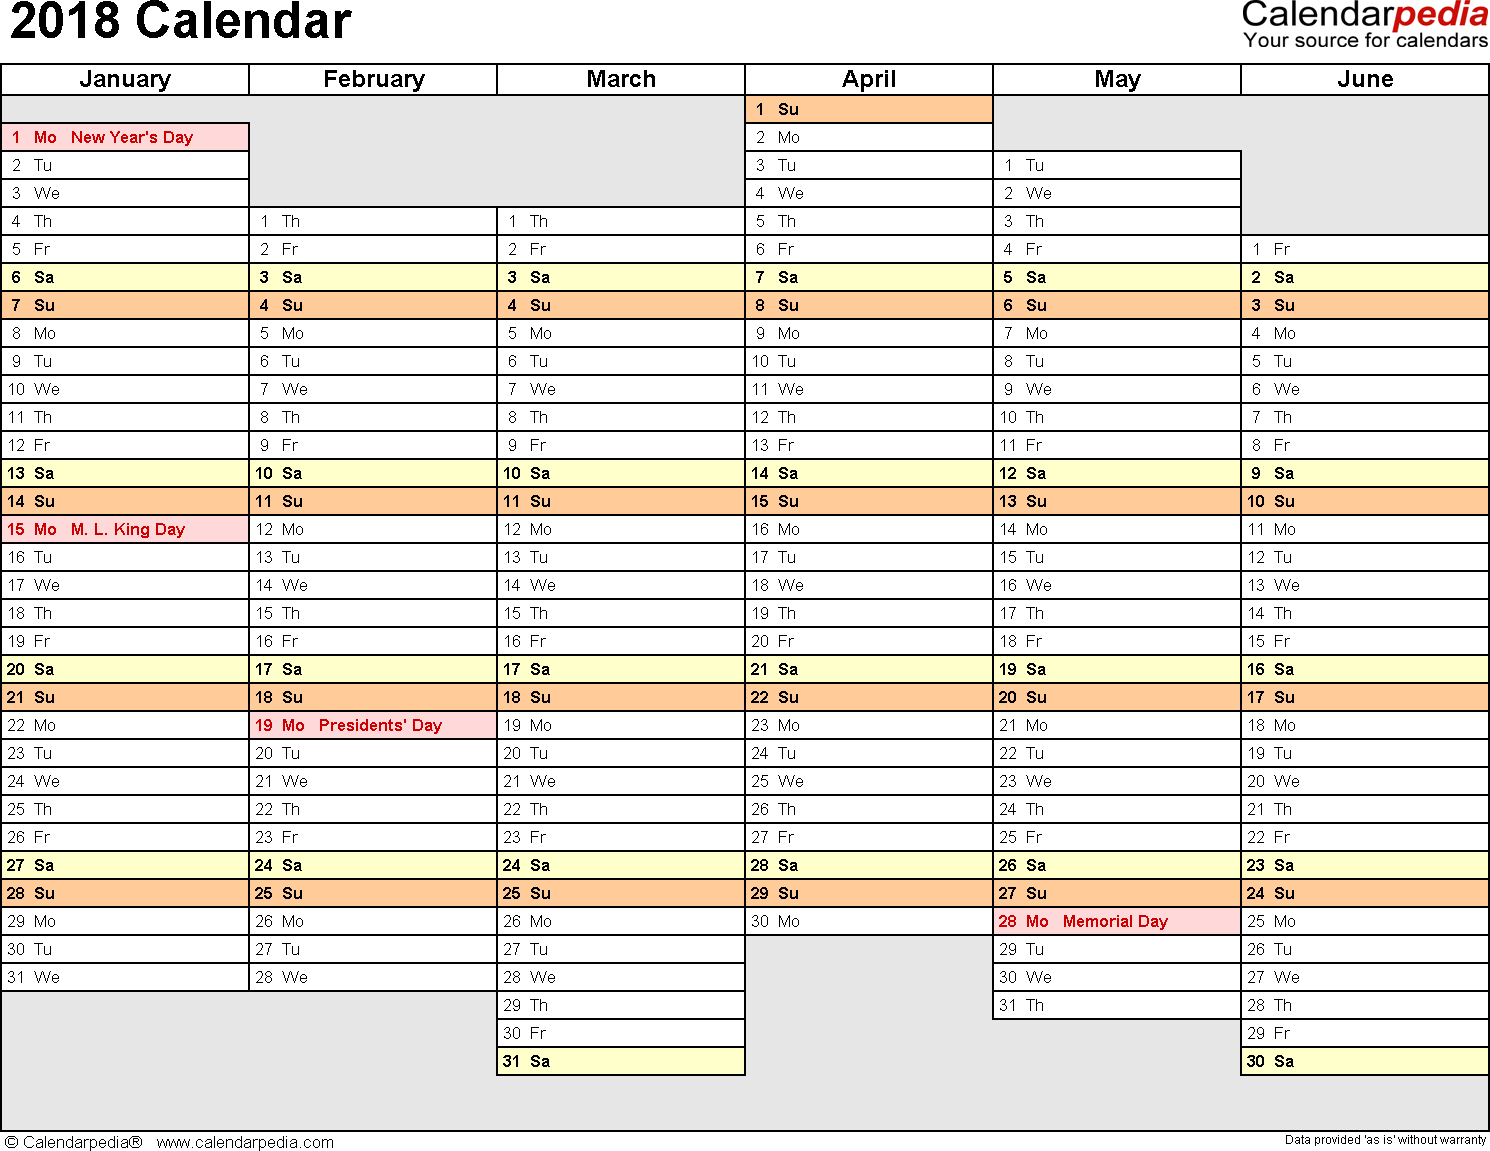 Template 4: 2018 Calendar for Word, months horizontally, 2 pages, days of the week in line/linear, landscape orientation